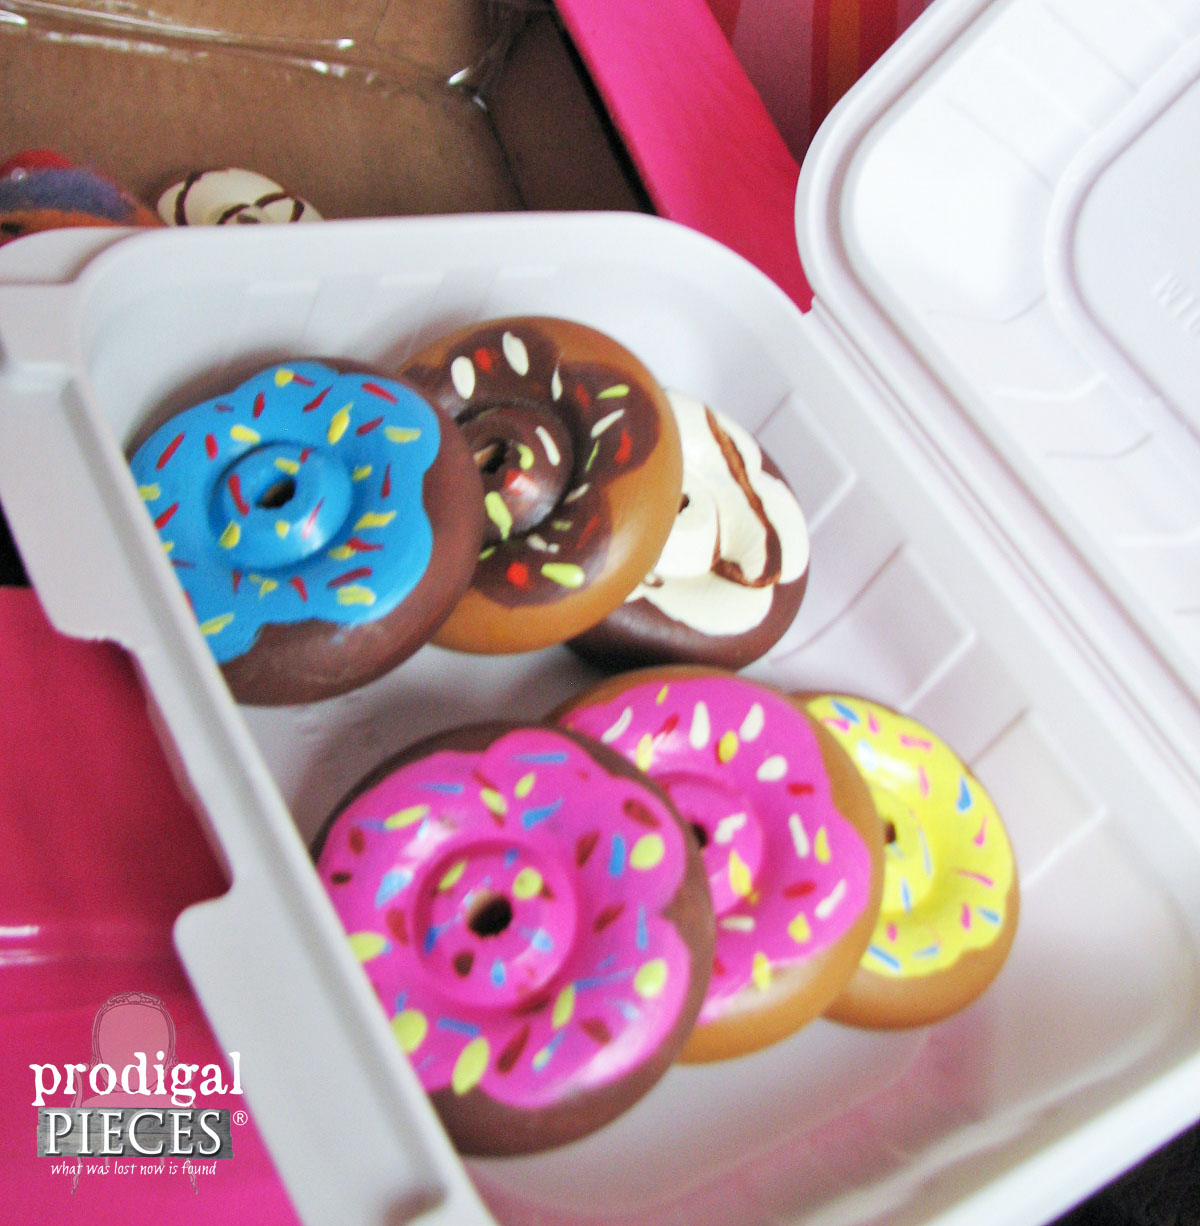 Wooden Toy Wheels Made into Pretend Play Doughnuts by Prodigal Pieces | www.prodigalpieces.com